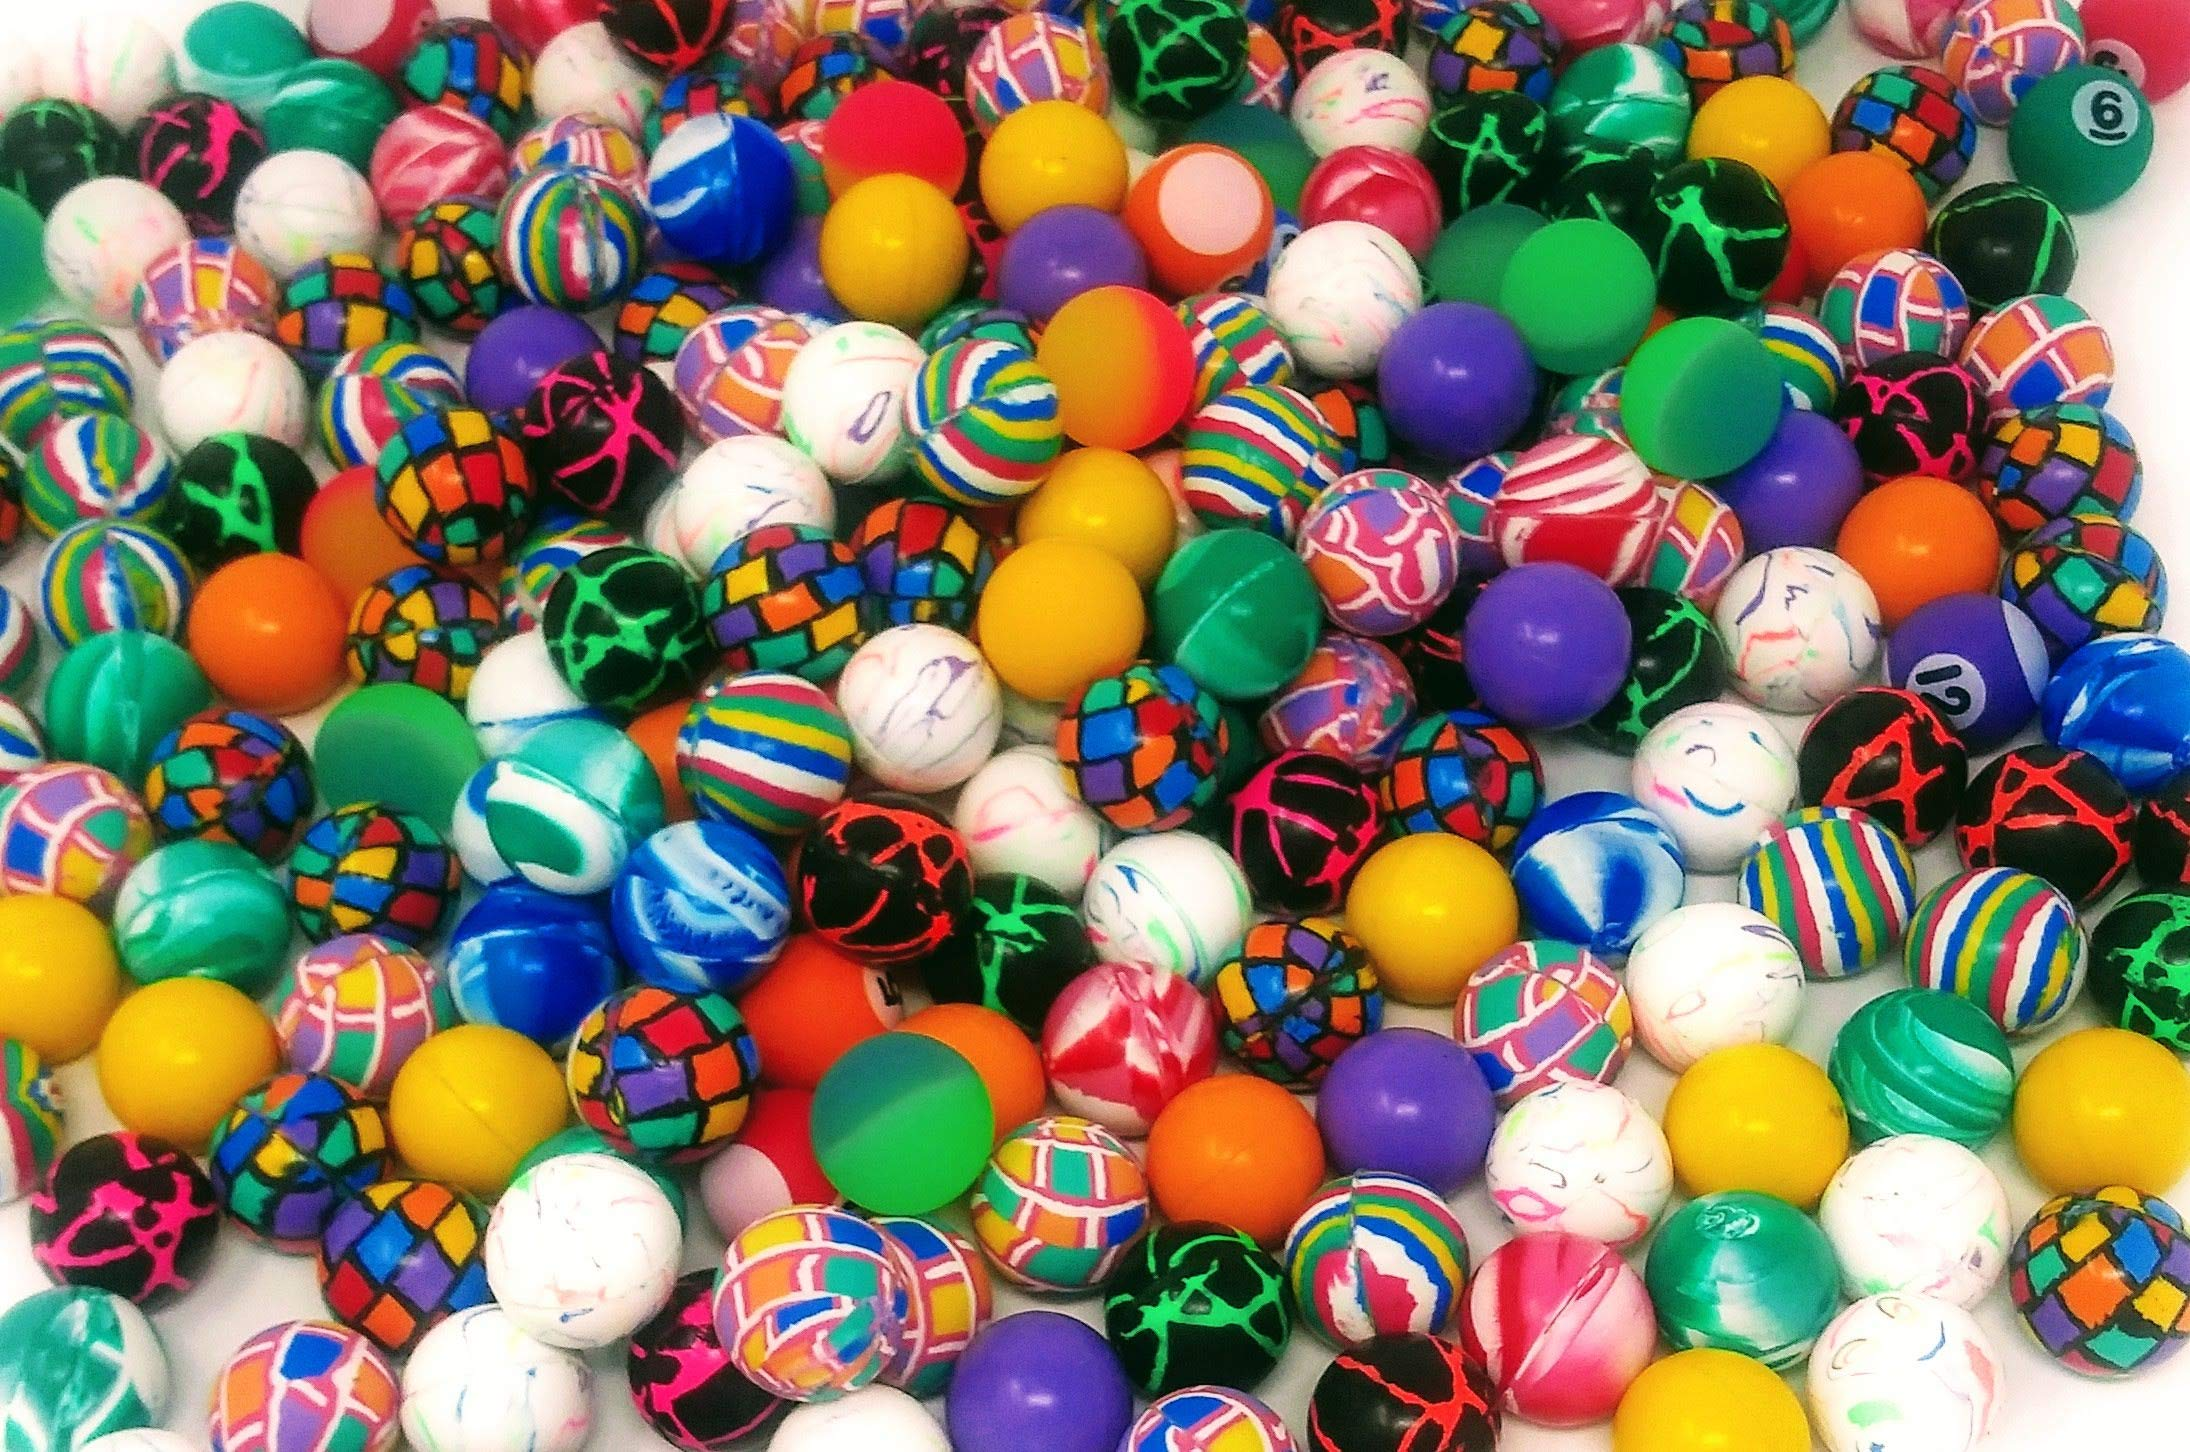 4E's Novelty Mega Bulk Assortment of 250 Bouncy Super Balls Mix for Kids, High Bouncing Swirl Rubber Balls, Great Bounce Party Favor Toys, Carnival Fun Prizes, for Boys and Girls 1''